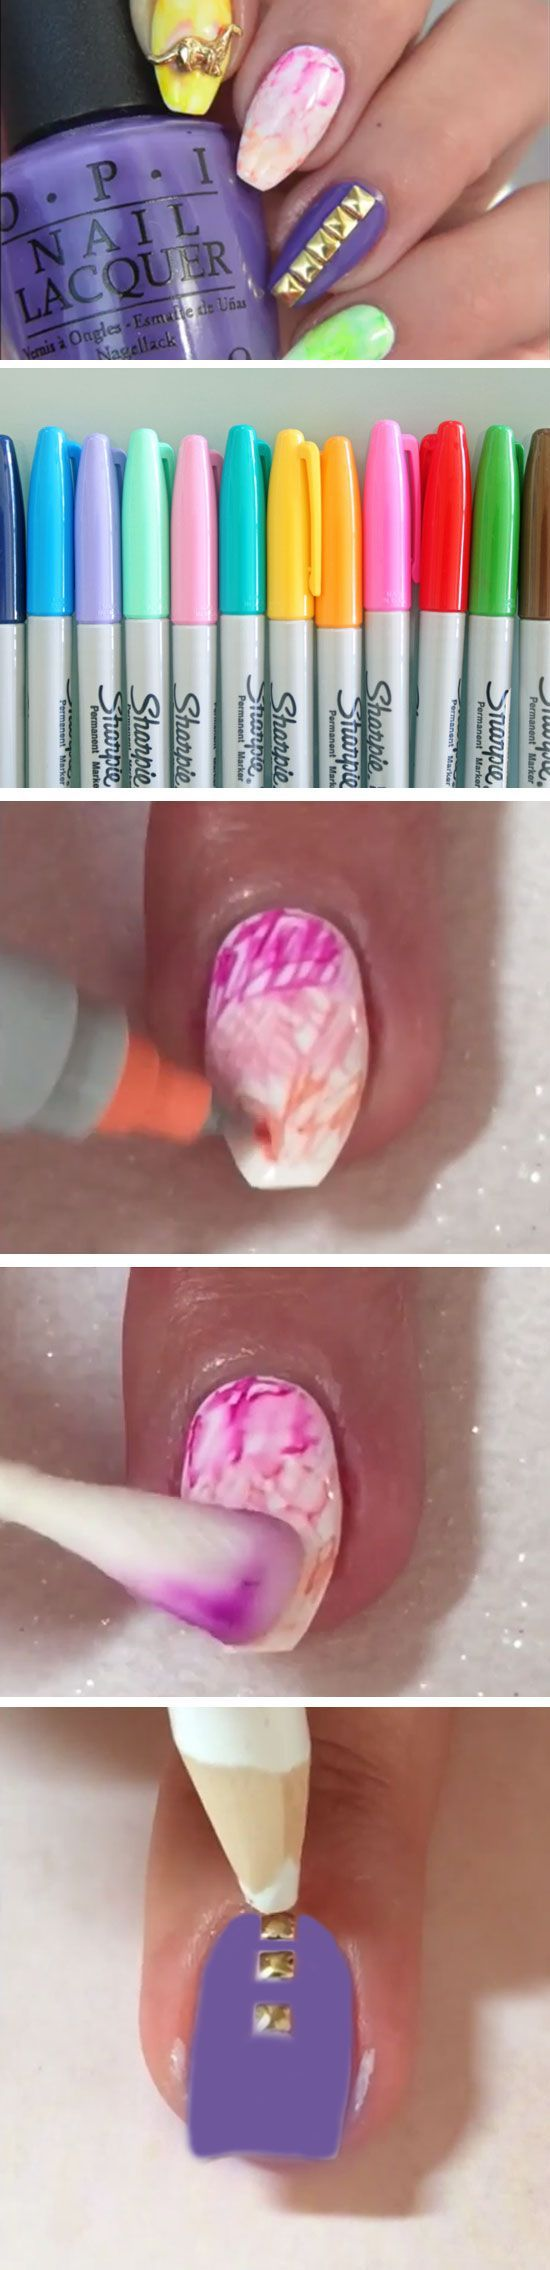 Sharpie Nails Tutorial